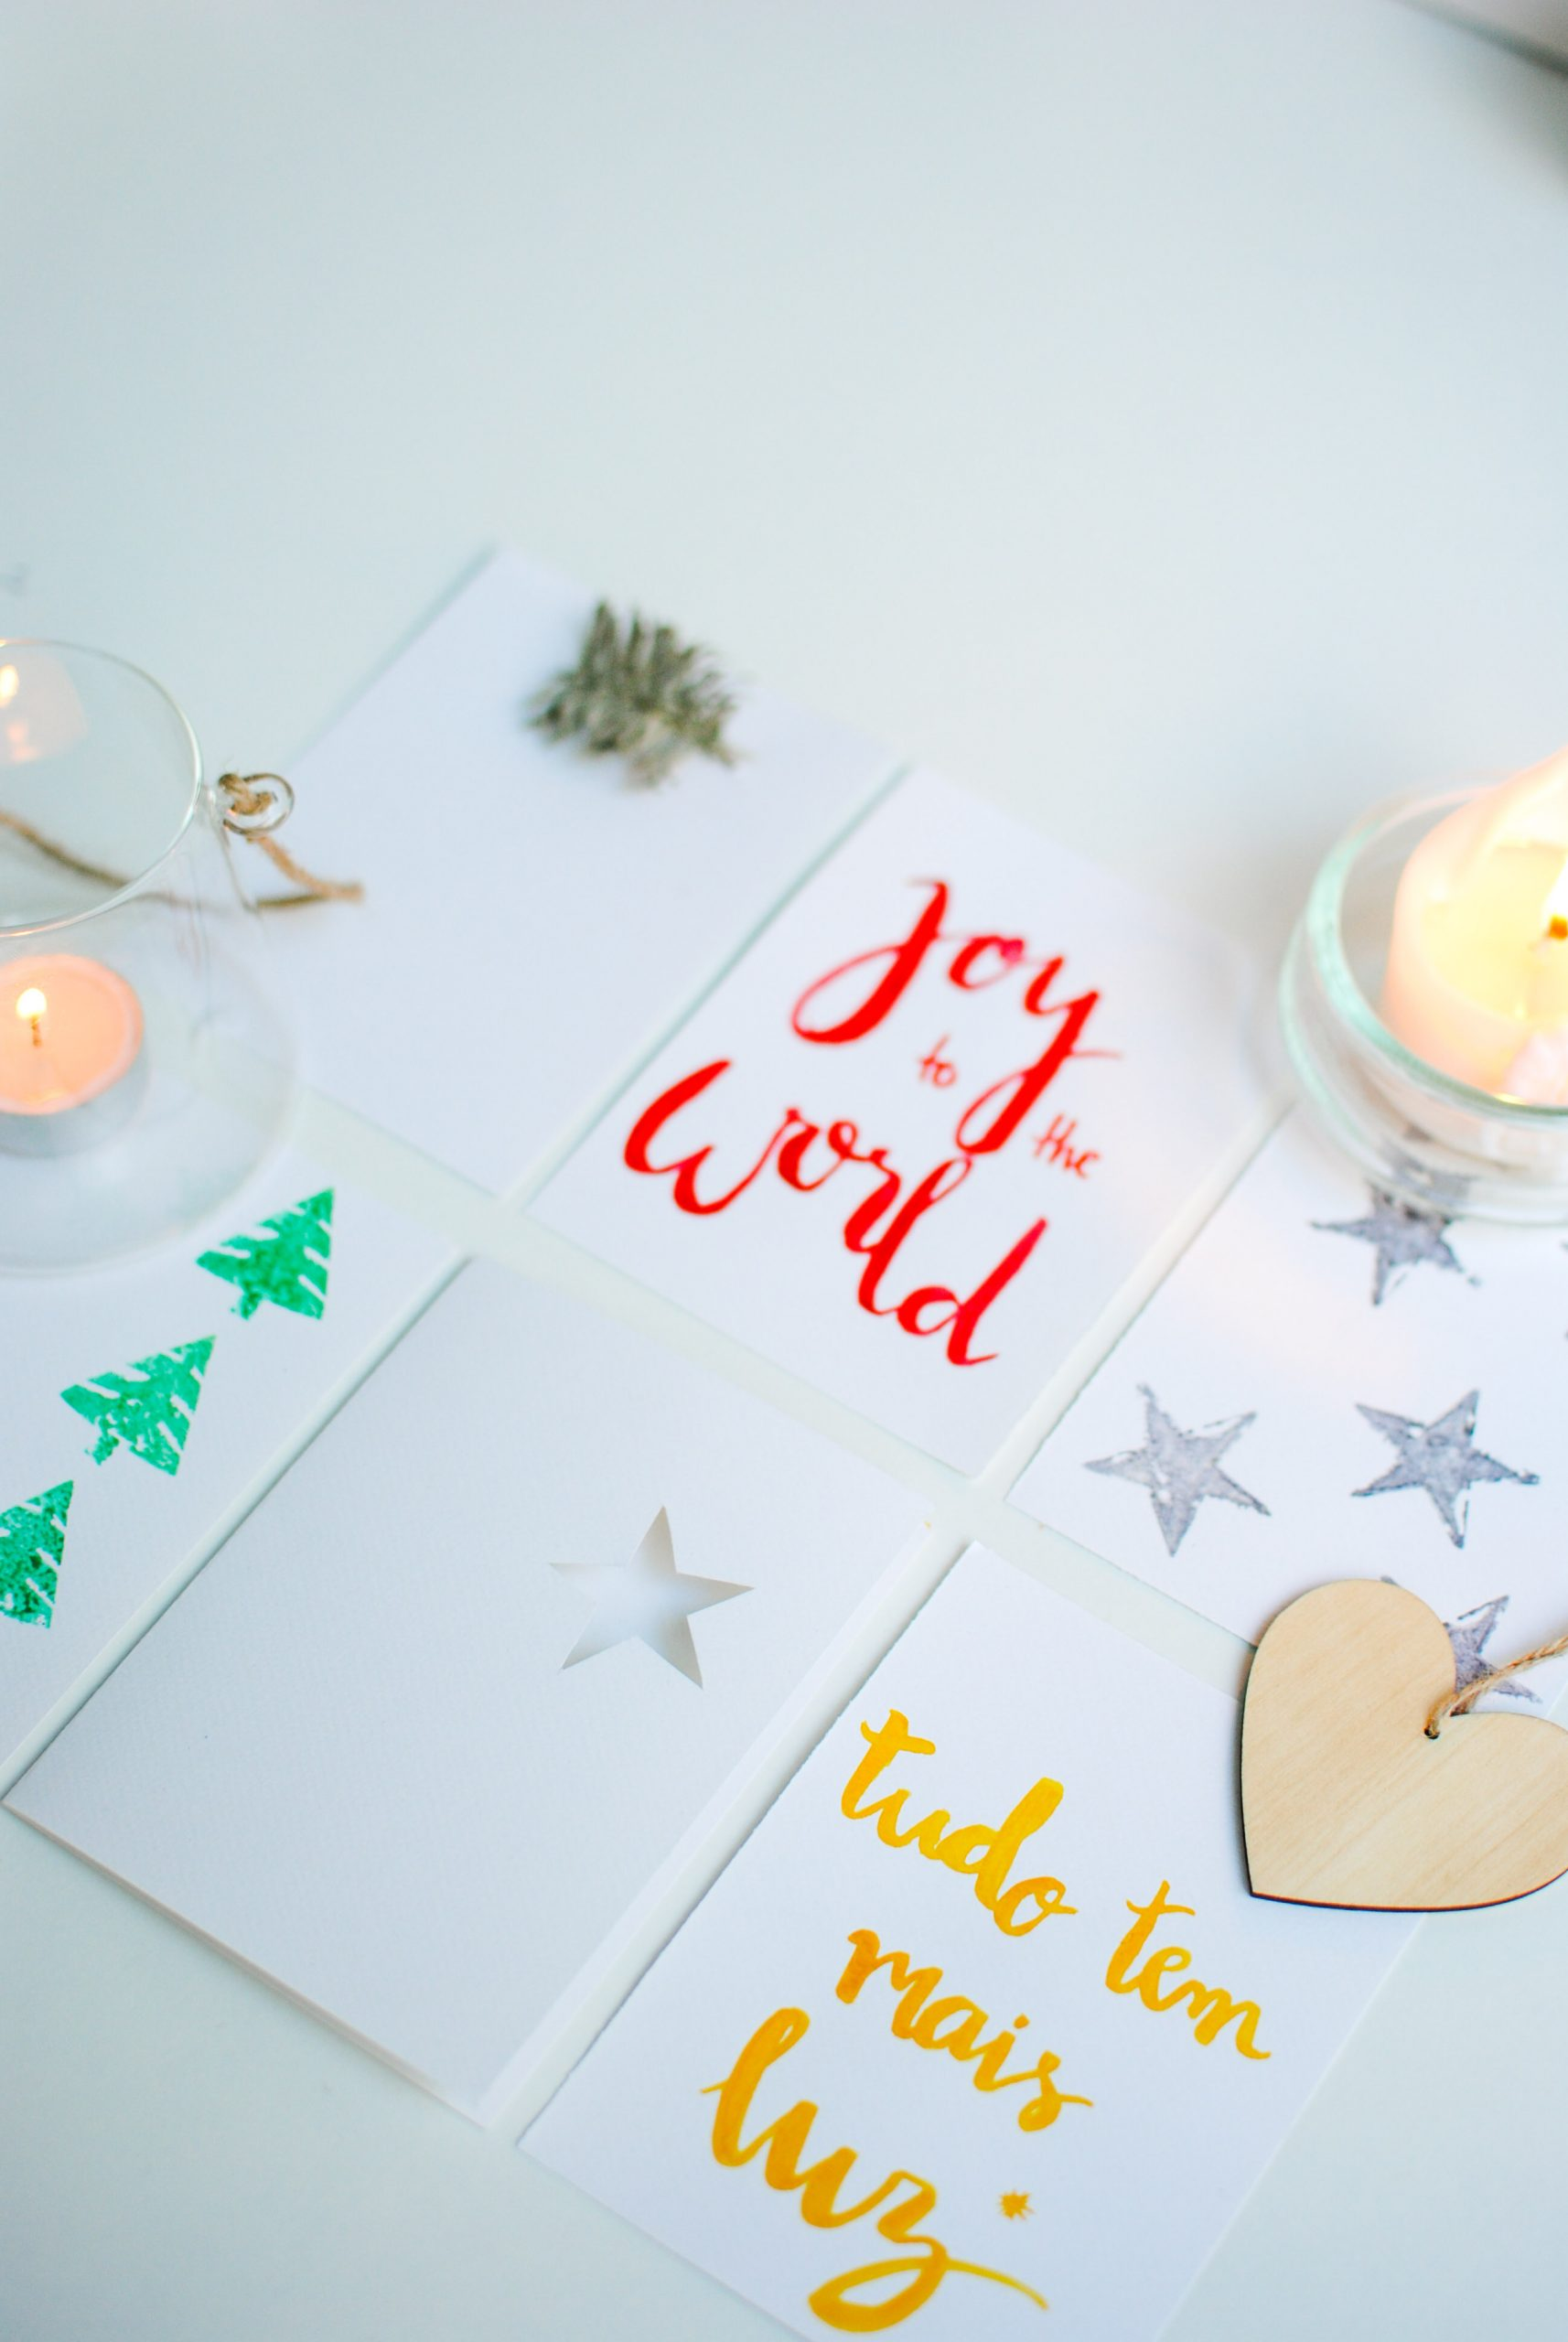 christmas cards | please consider | joana limao